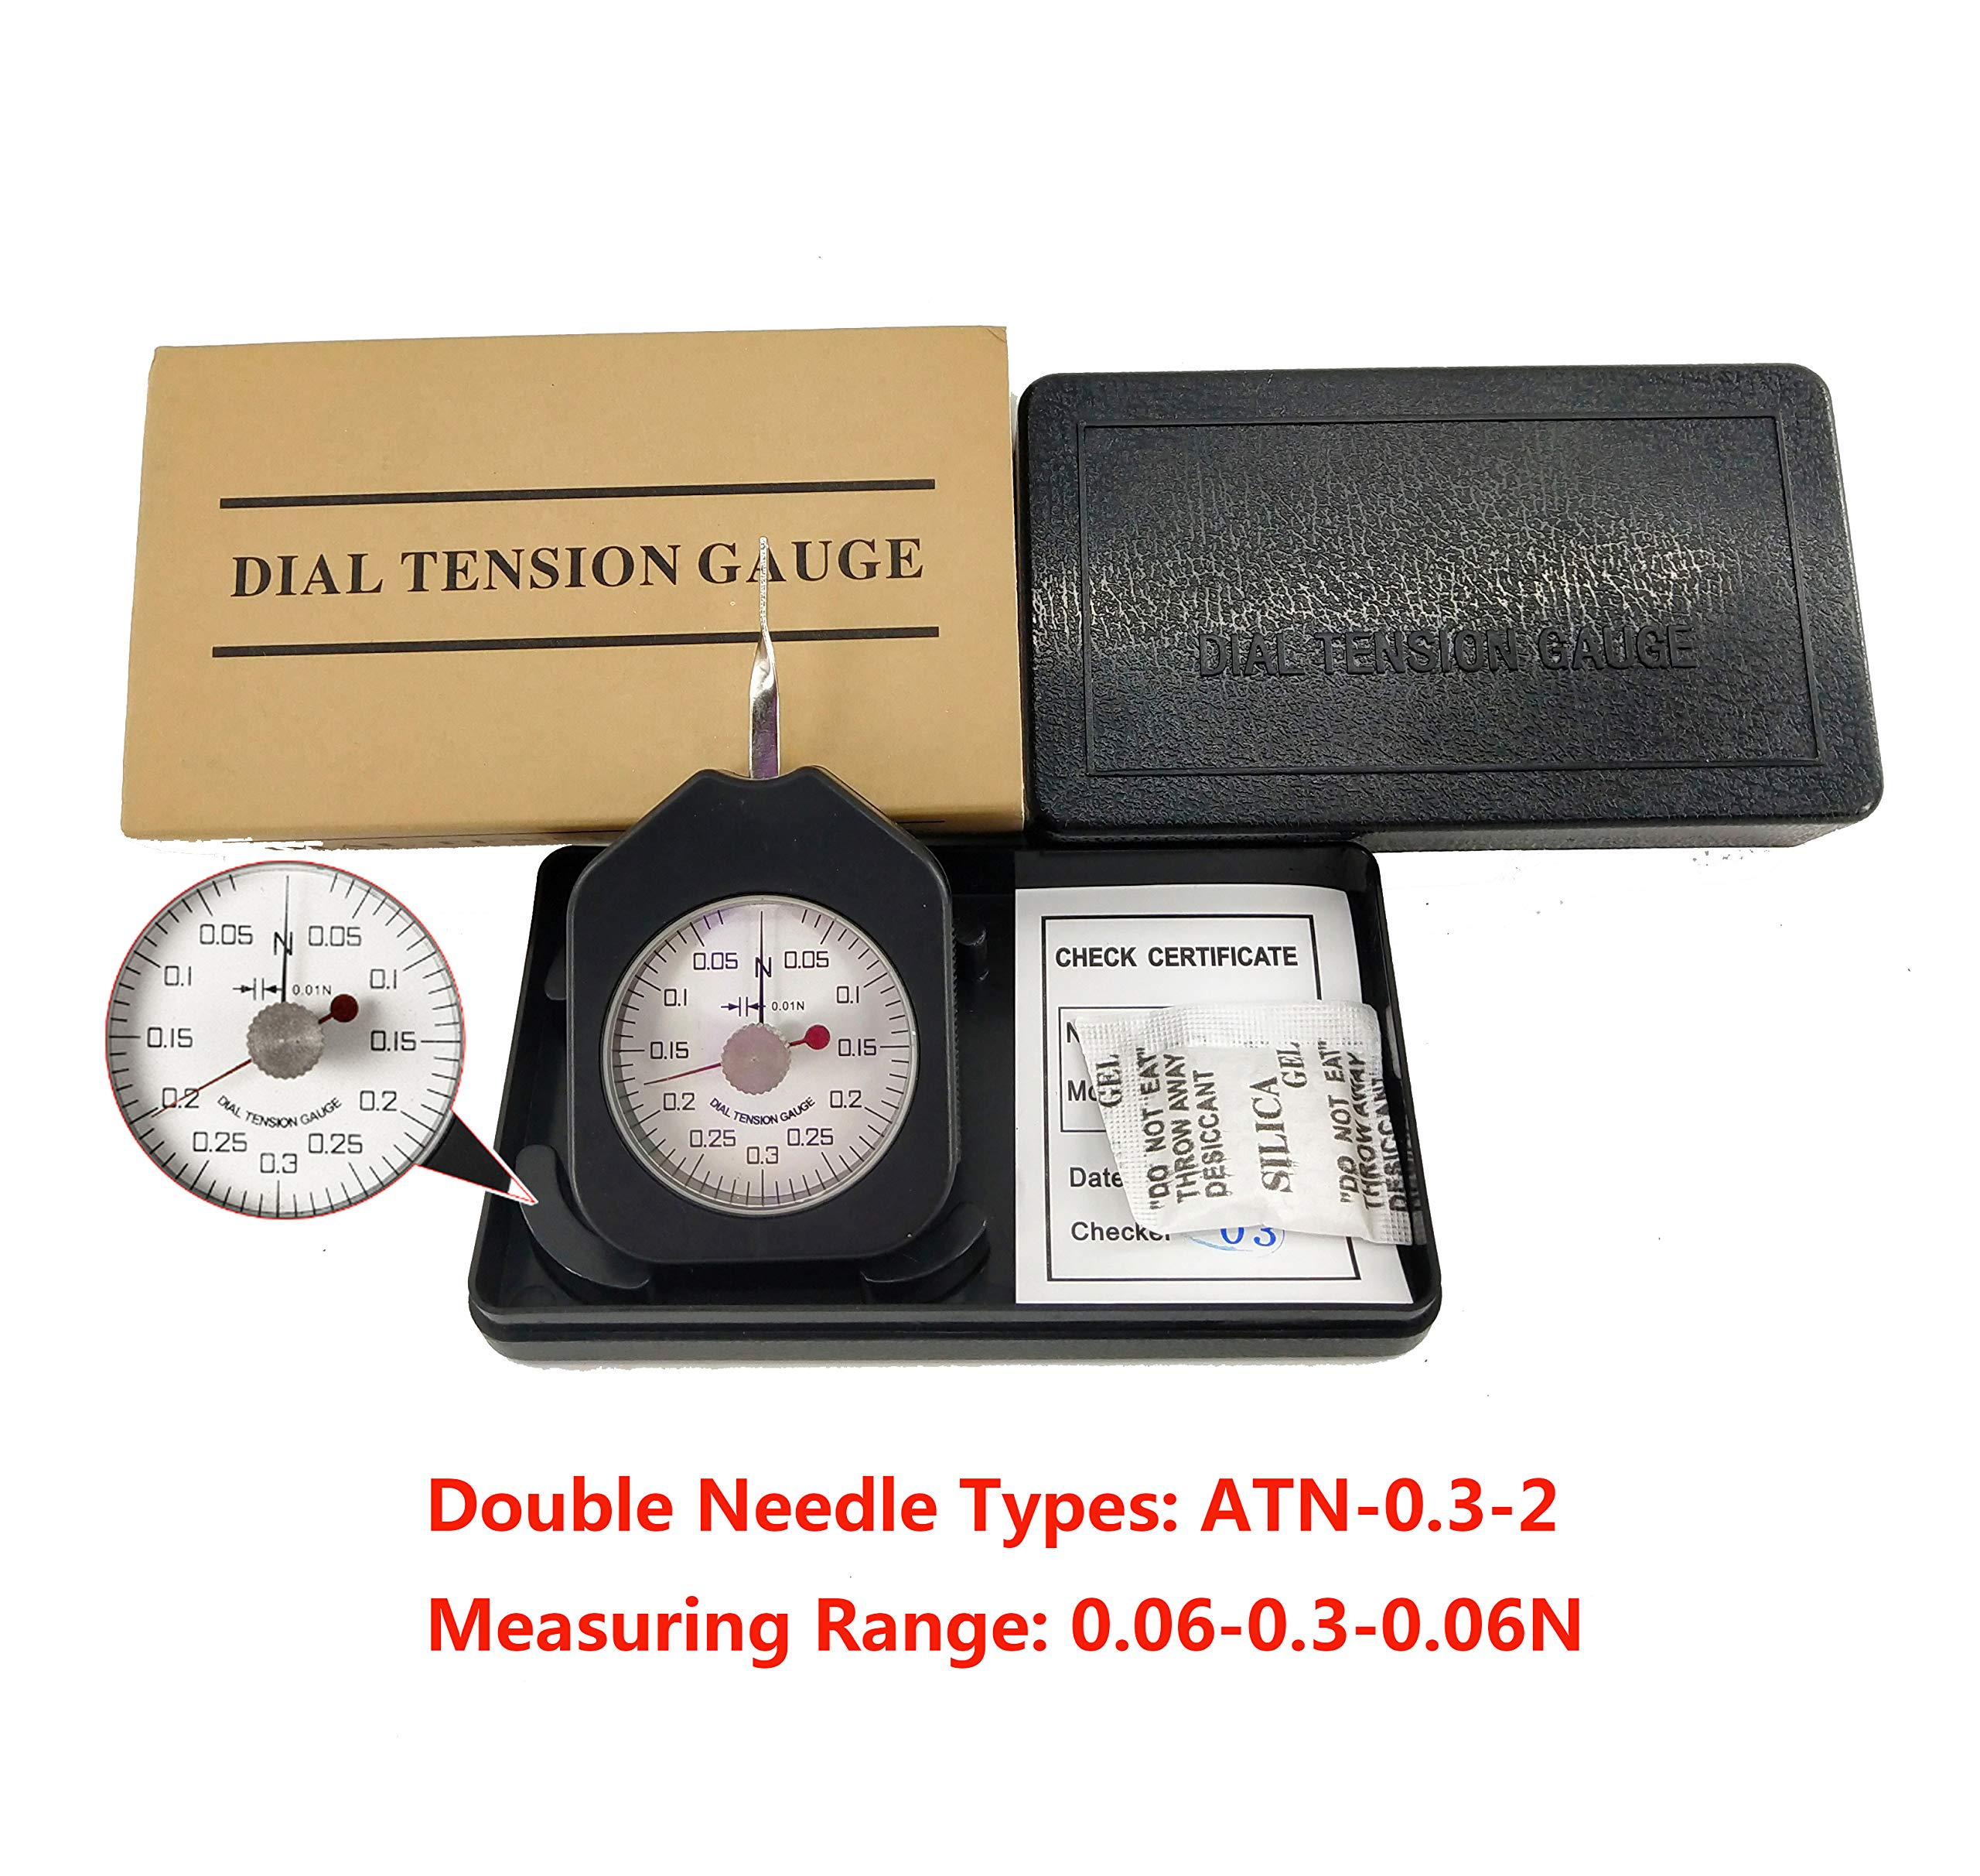 HFBTE ATN-0.3-2 Mini Size Tensionmeter Tension Gauge with 0.01N Division Value Double Pointer Type by HFBTE